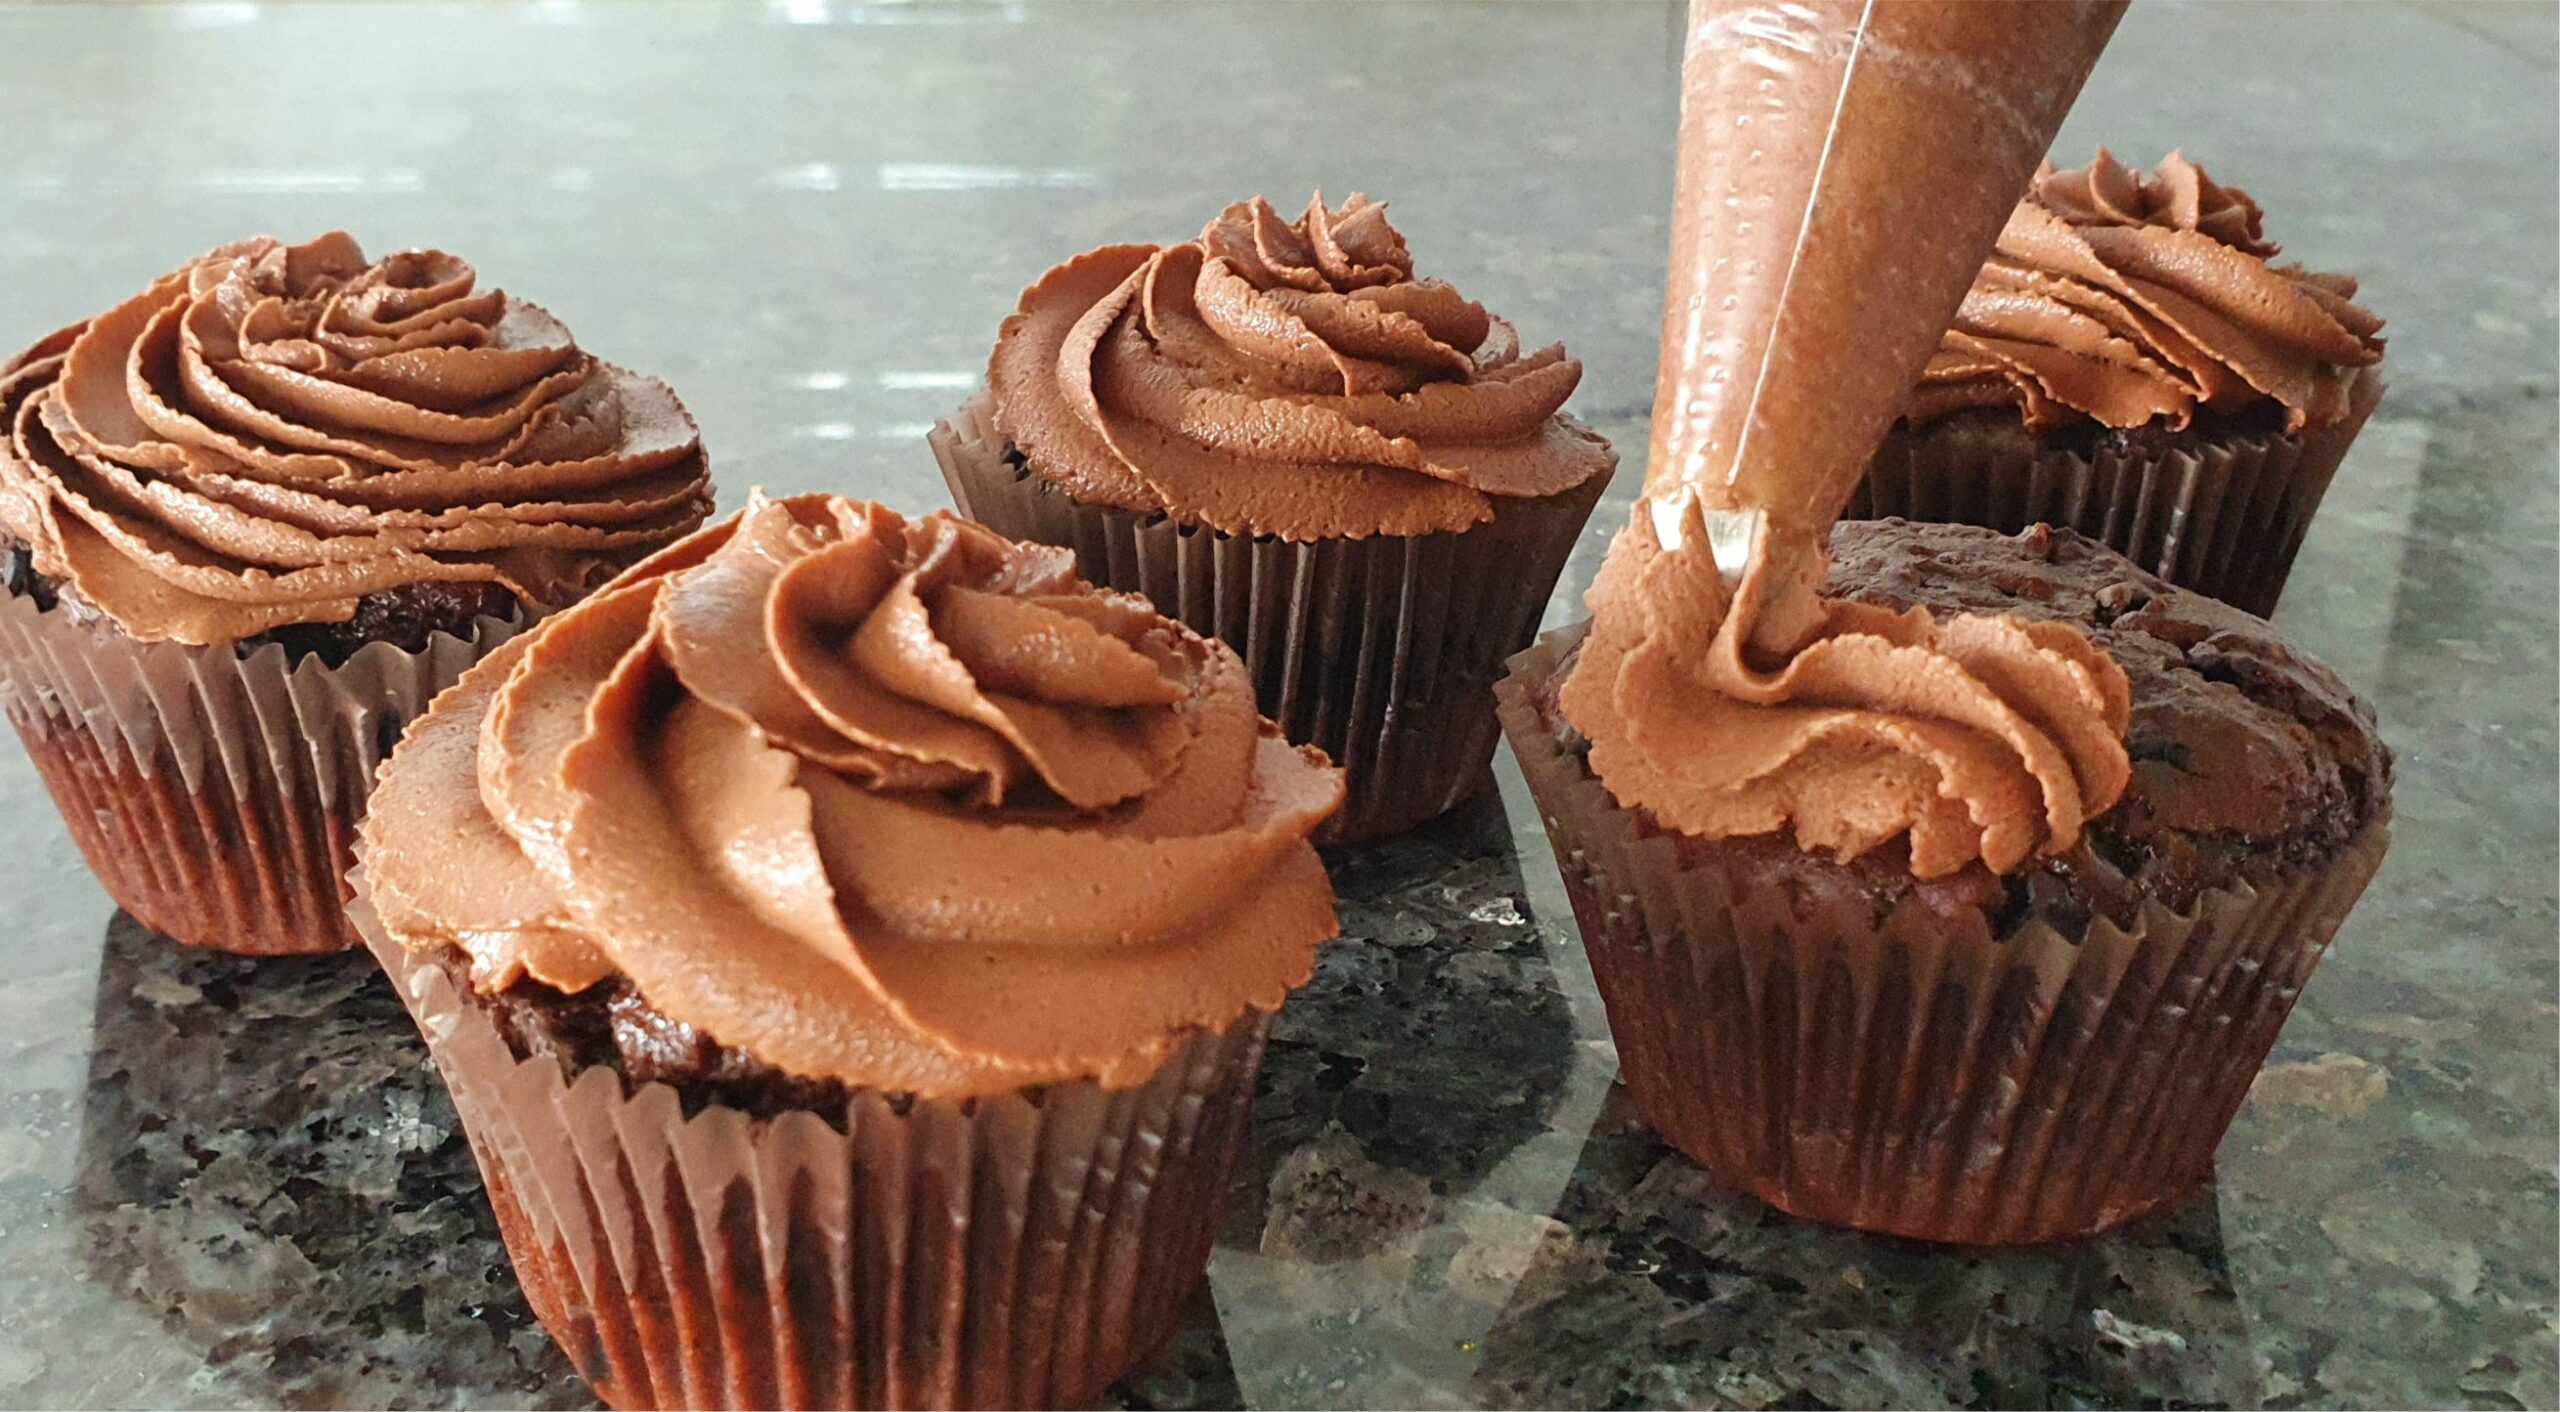 The BEST Chocolate Buttercream Recipe